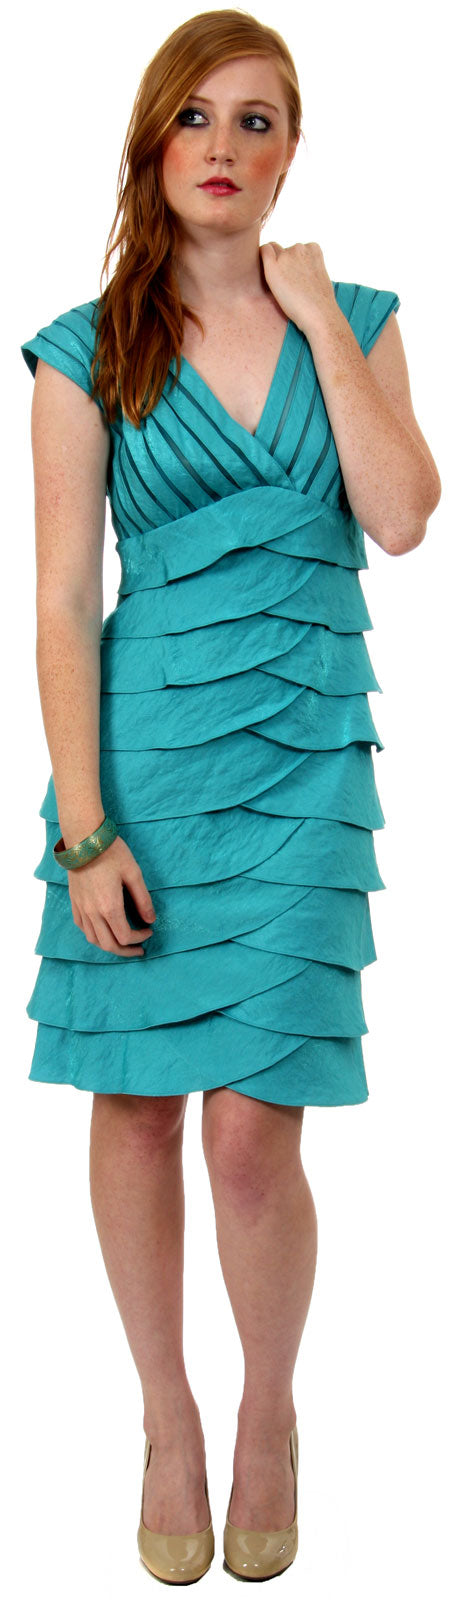 Main image of Aqua Inspired Cocktail Dress With Cascading Ruffles